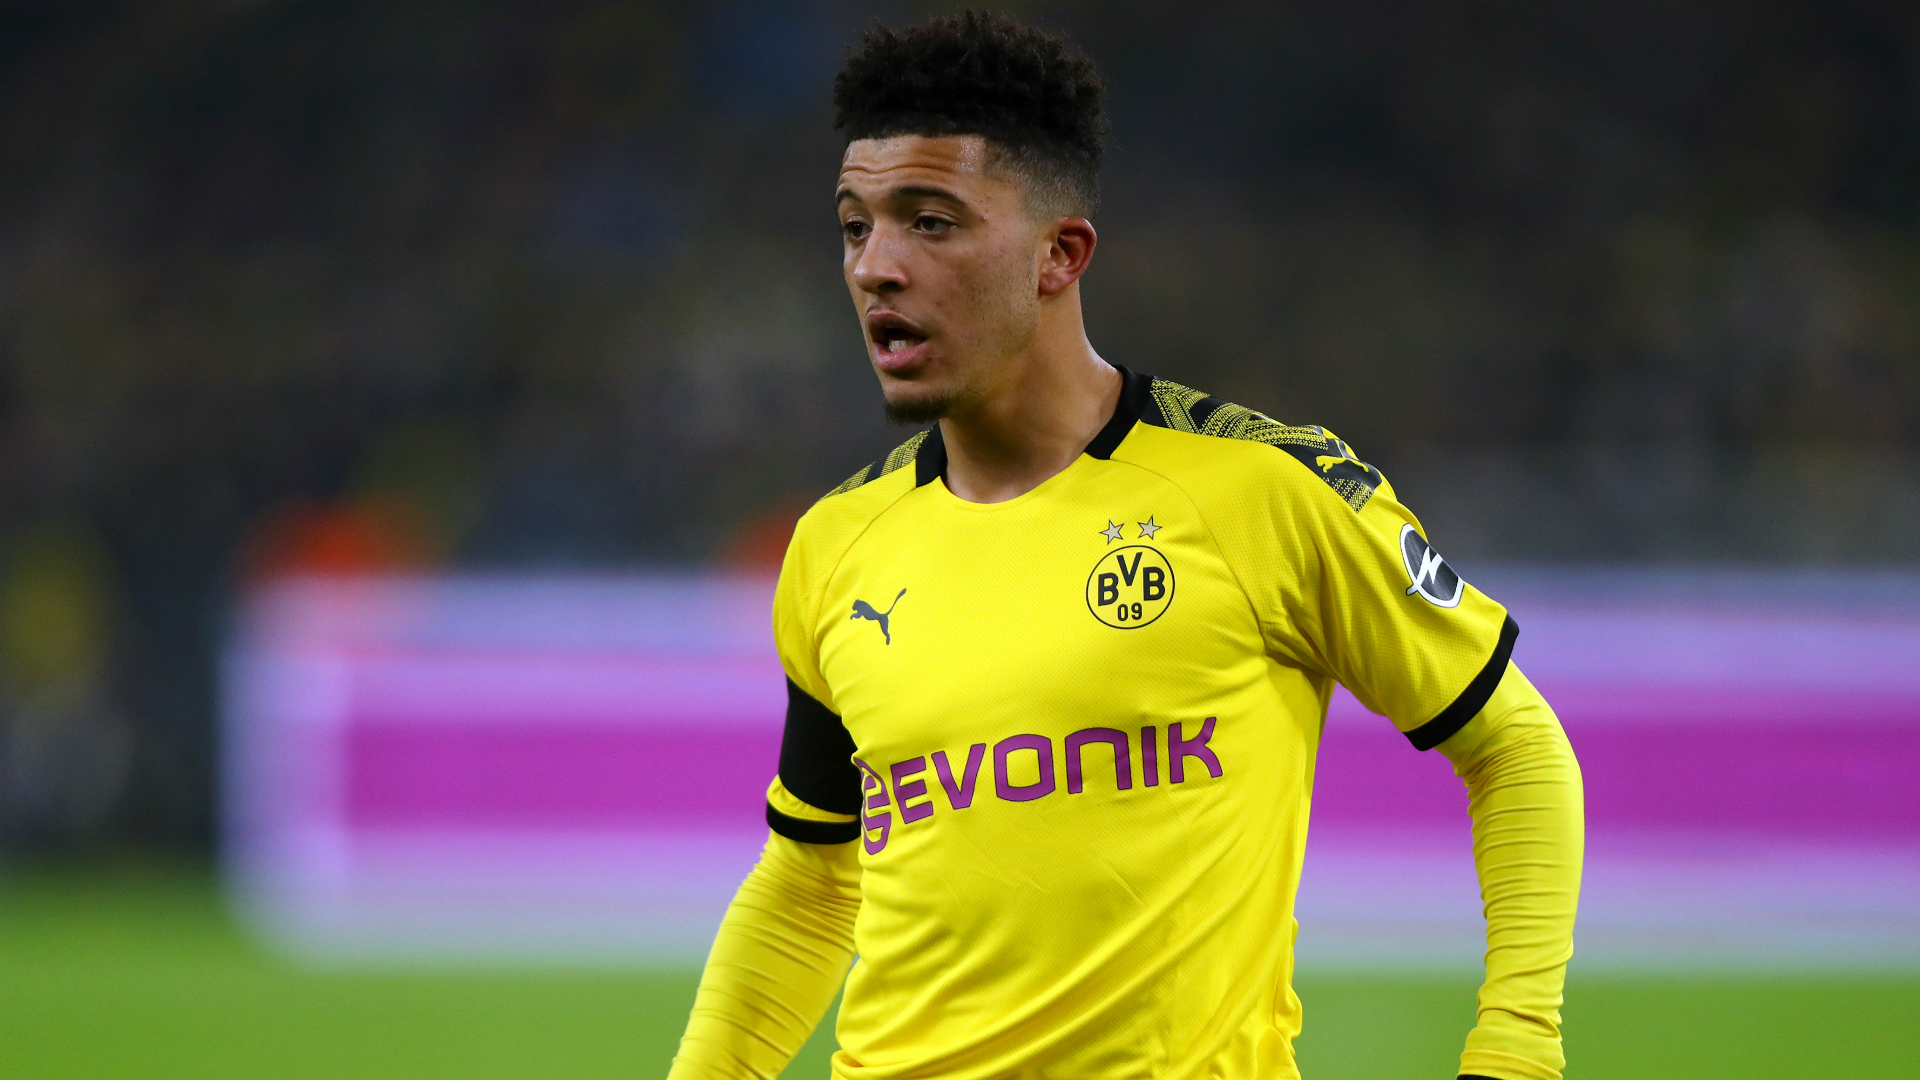 Rumour Has It: Dortmund in no hurry to sell Man Utd & Chelsea target Sancho, Messi wants Barca stay